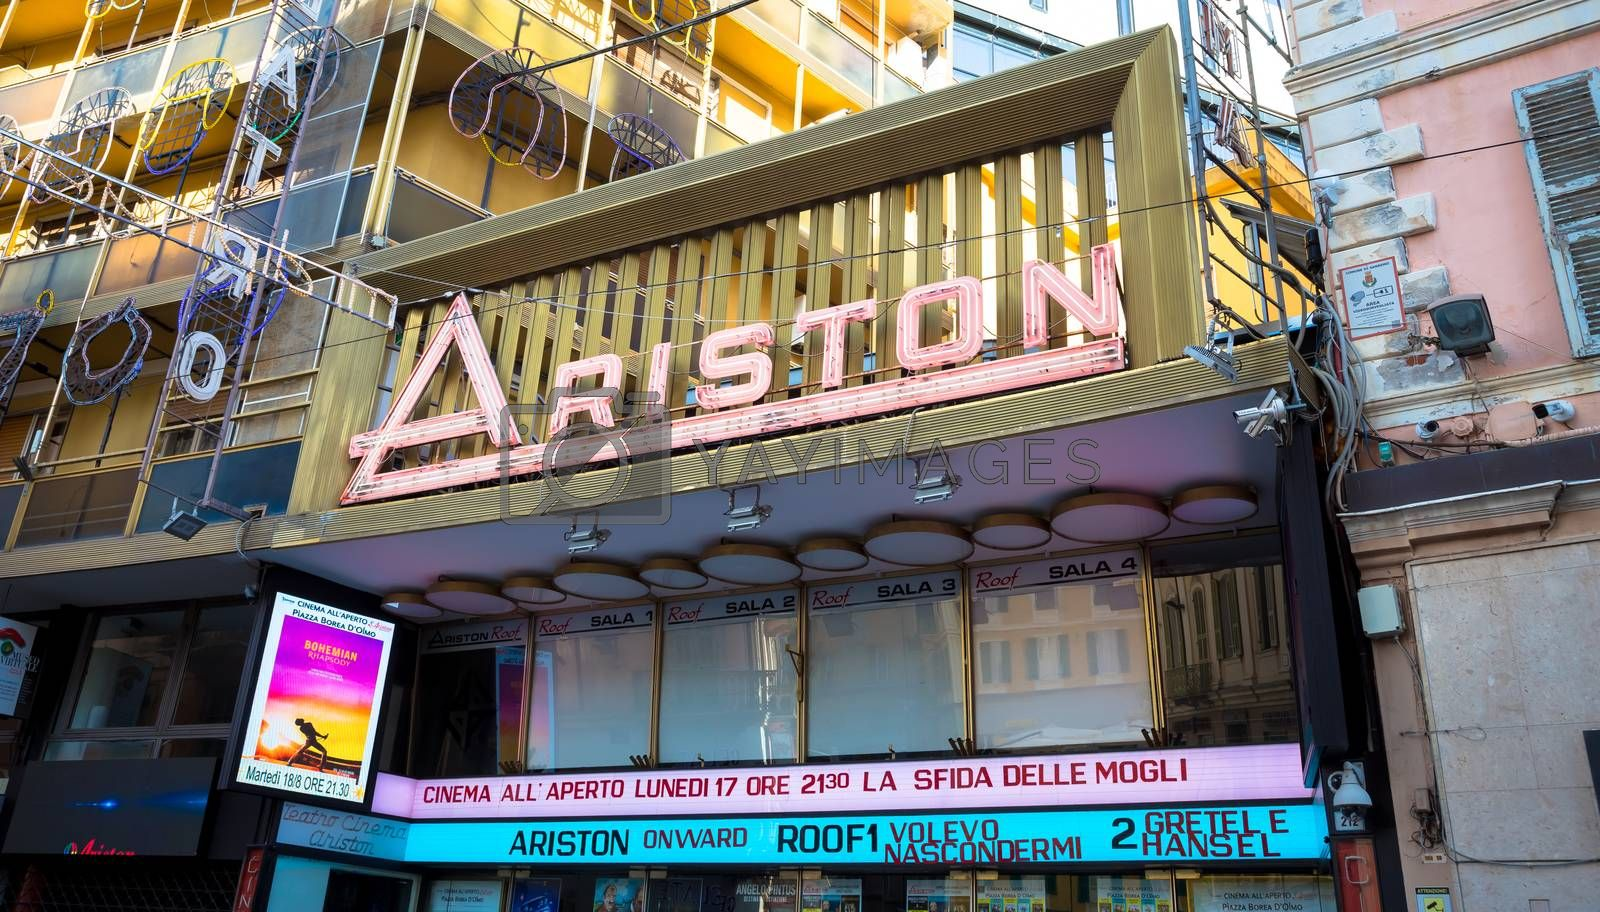 SANREMO, ITALY - CIRCA AUGUST 2020: view of the Sanremo Ariston theatre with detail of the name. This is the famous song festival location.